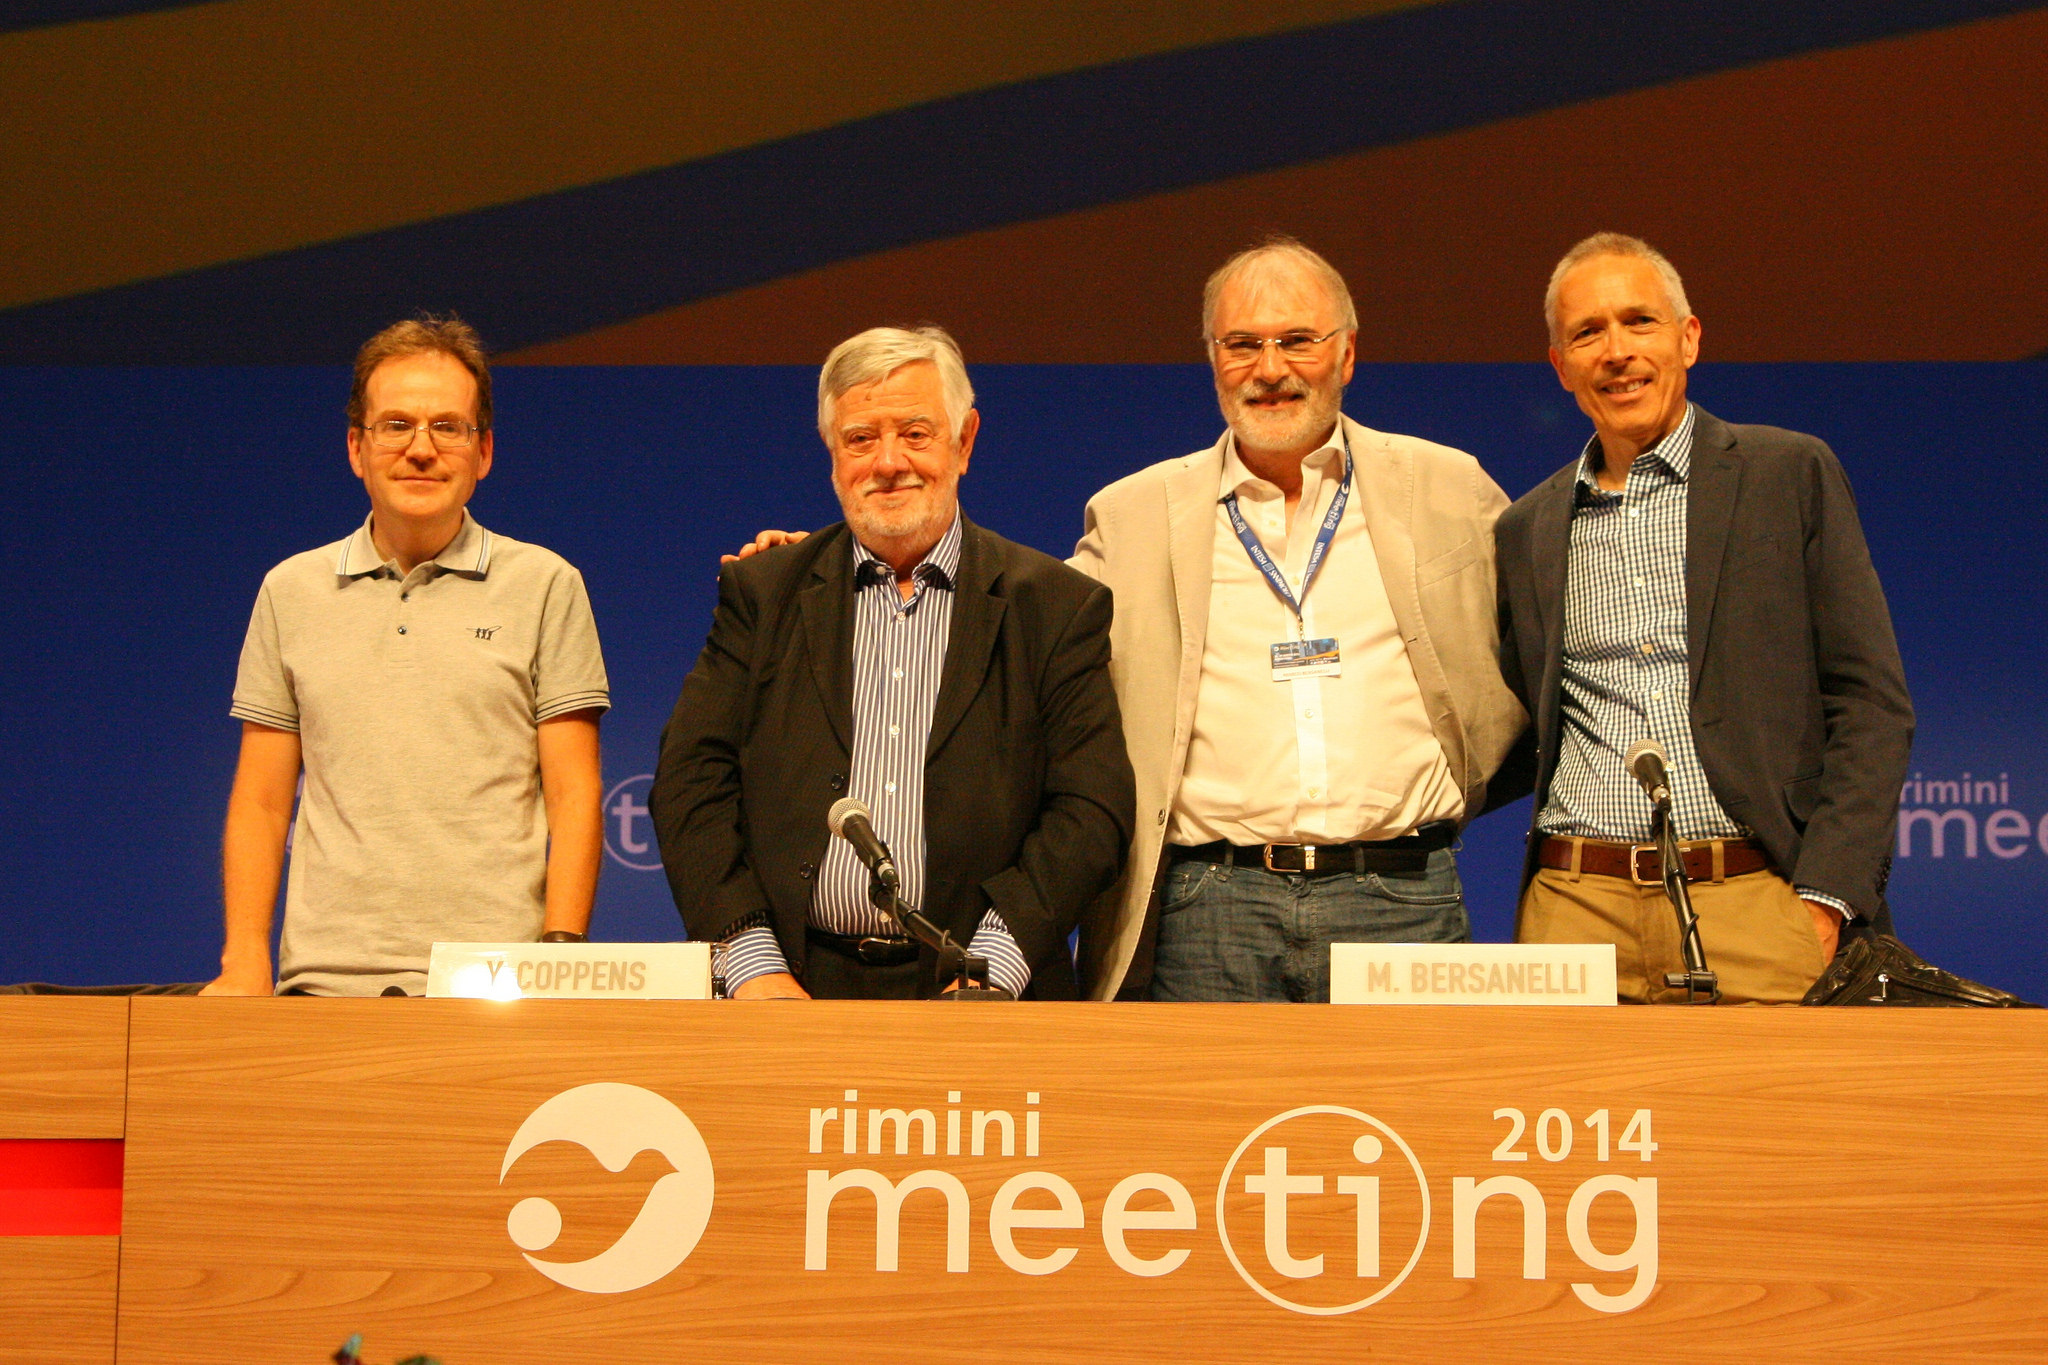 meeting-rimini-lafforgue-scienza2